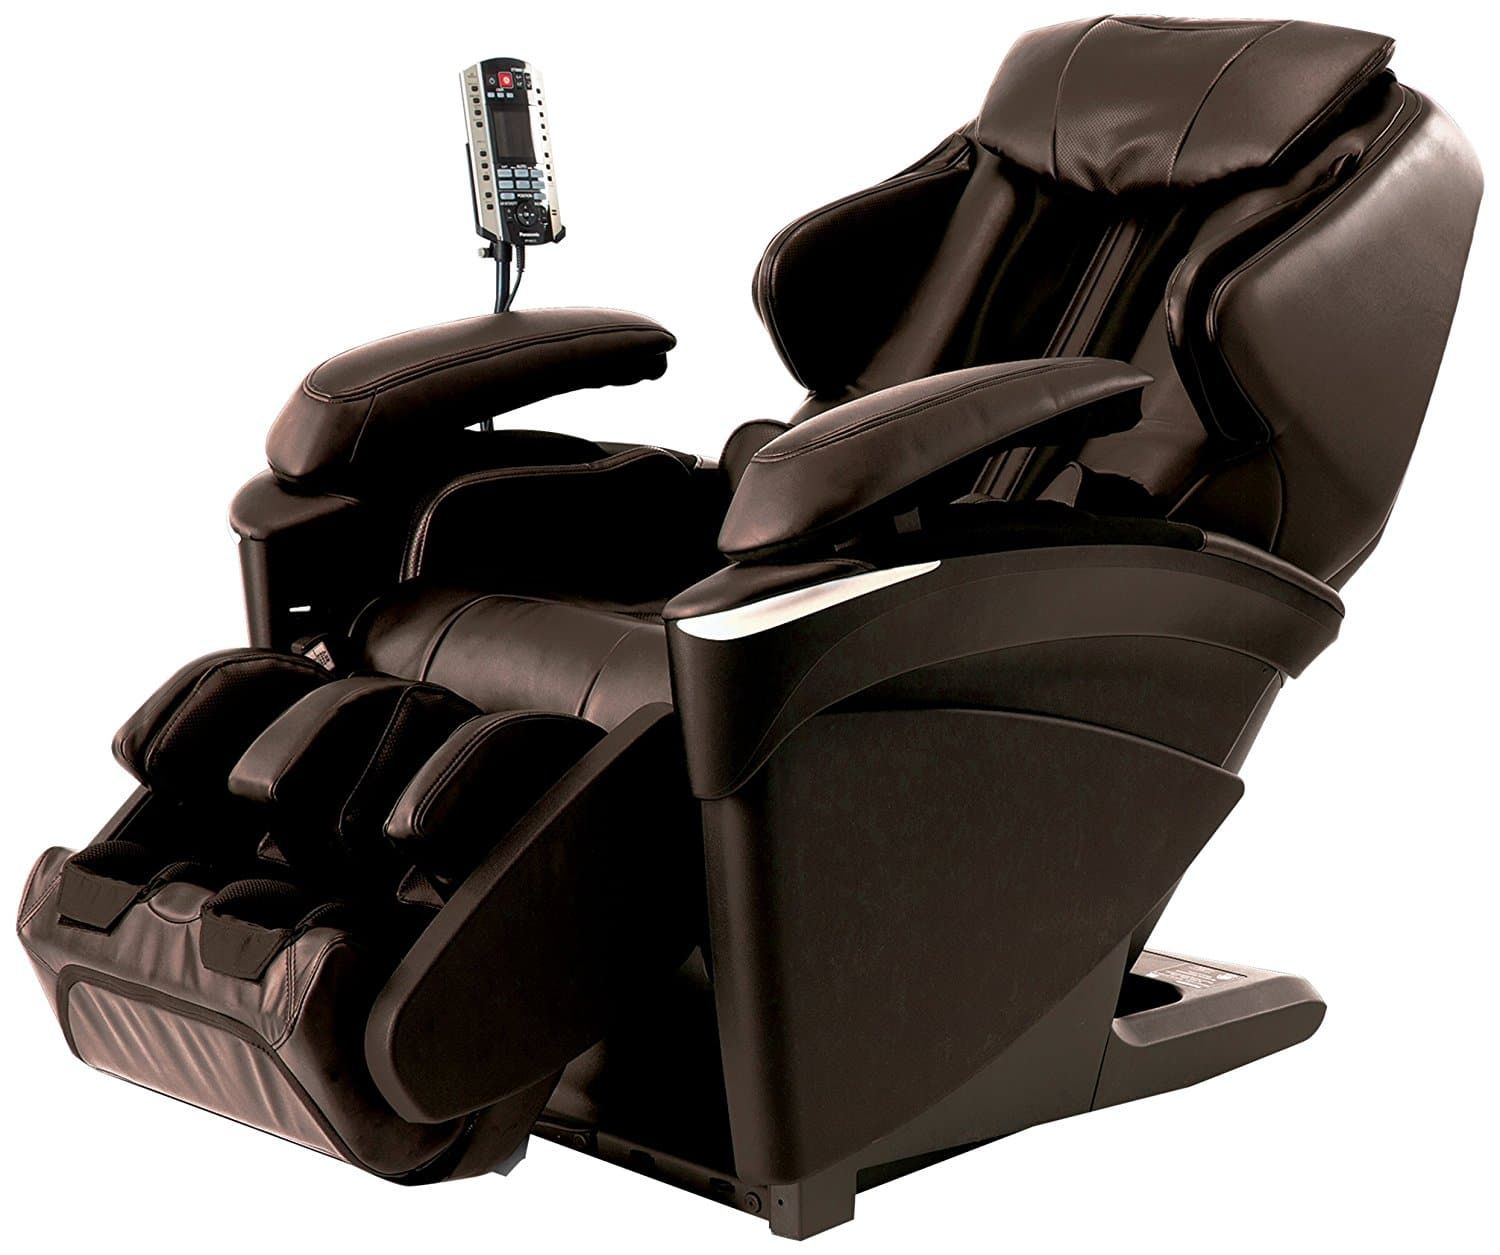 Top 9 Best Full Body Massage Chairs in 2020 Complete